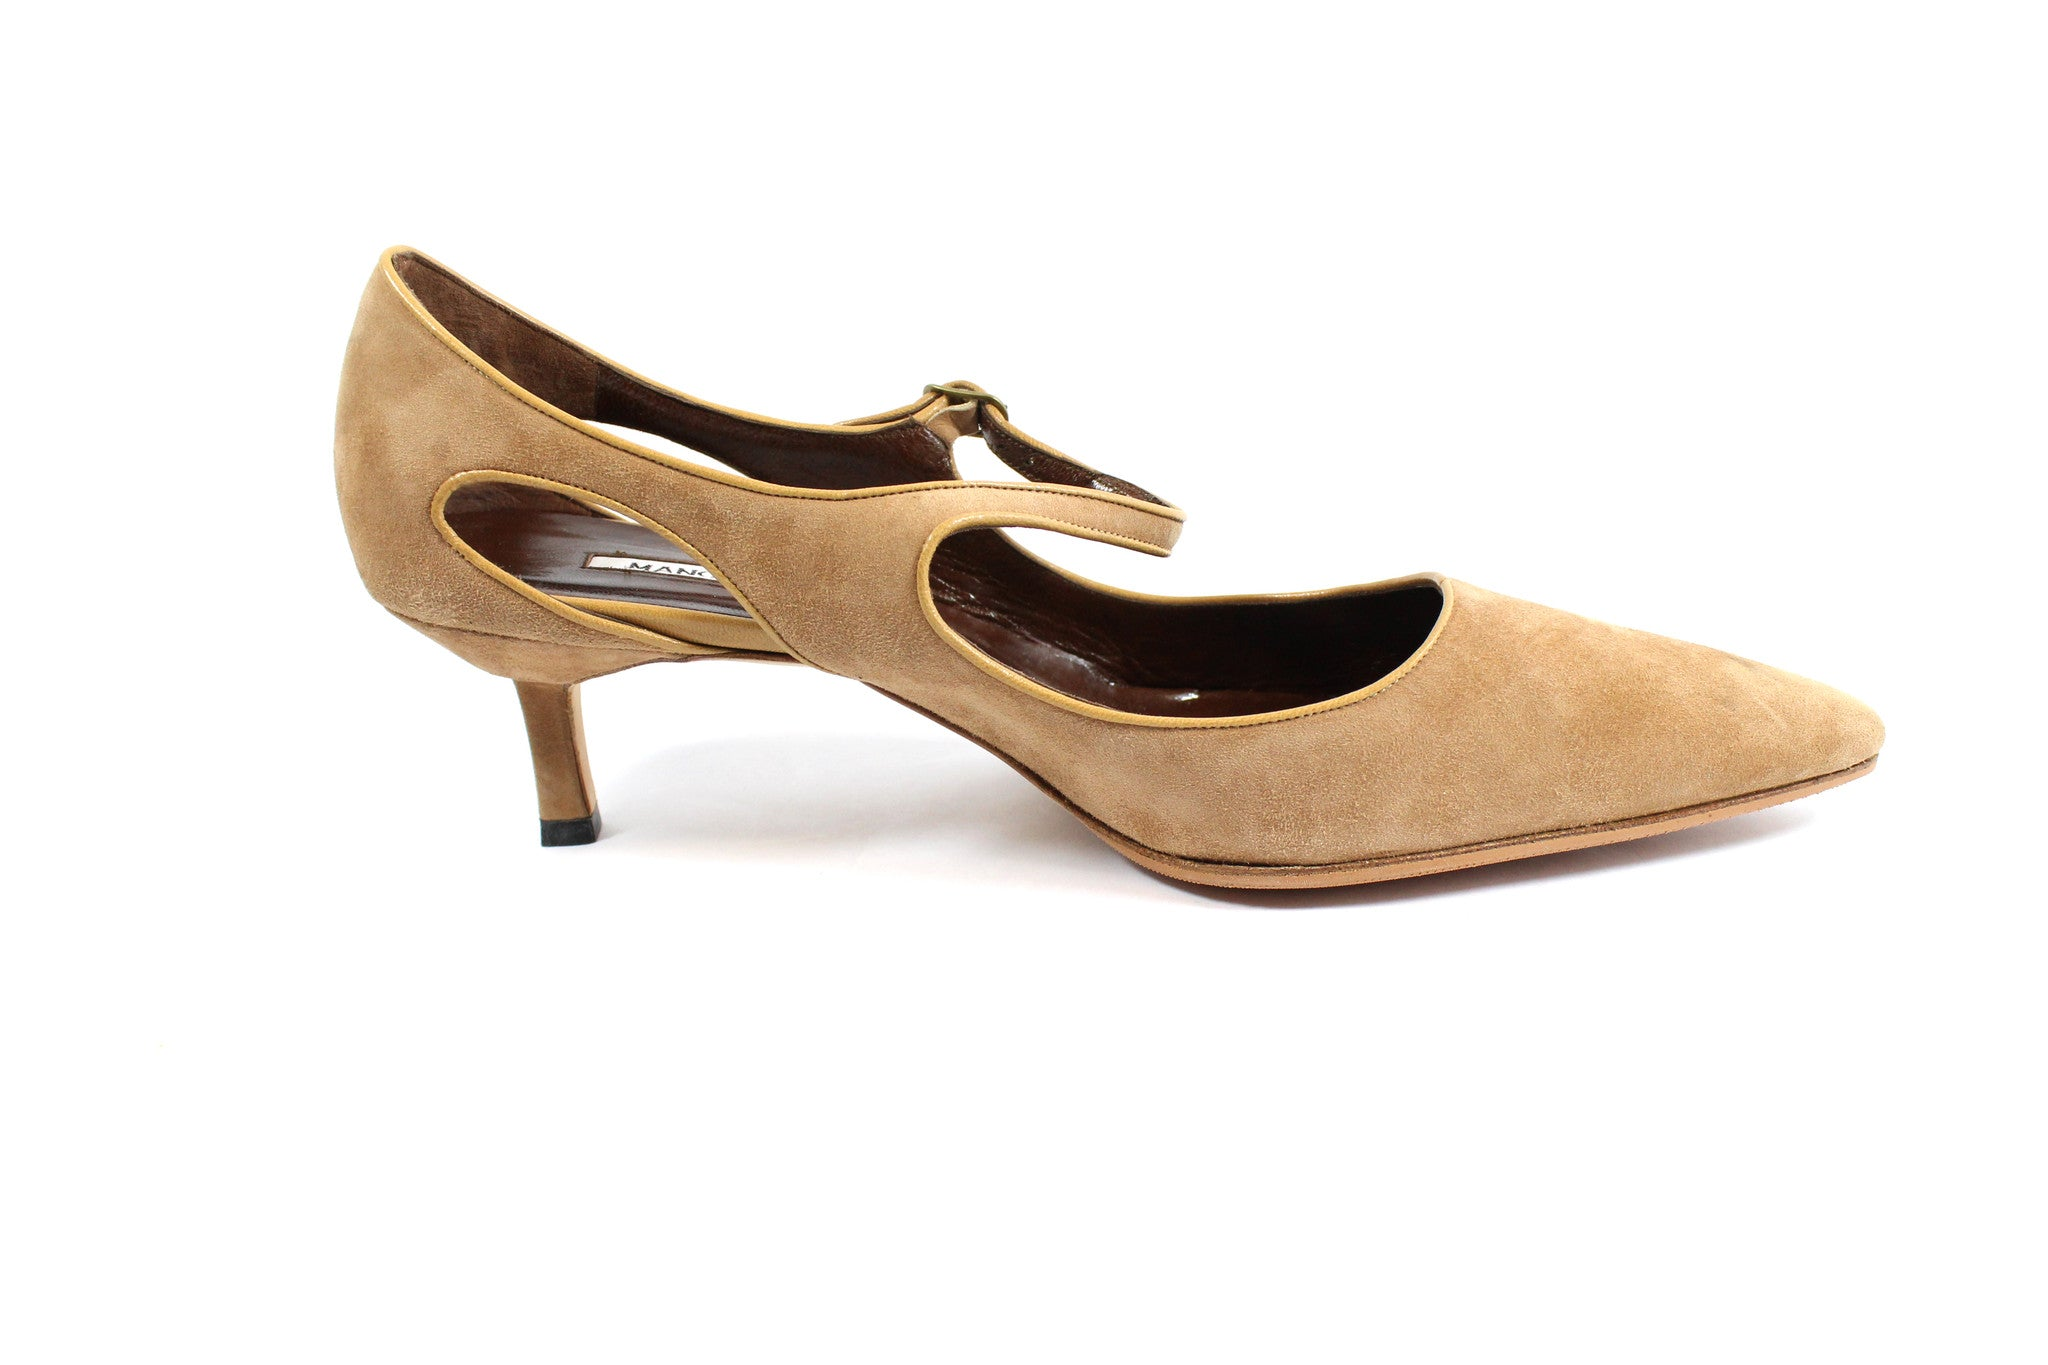 Manolo Blahnik Camel Suede Cut Out Mary Janes (Size 41) - Encore Consignment - 6